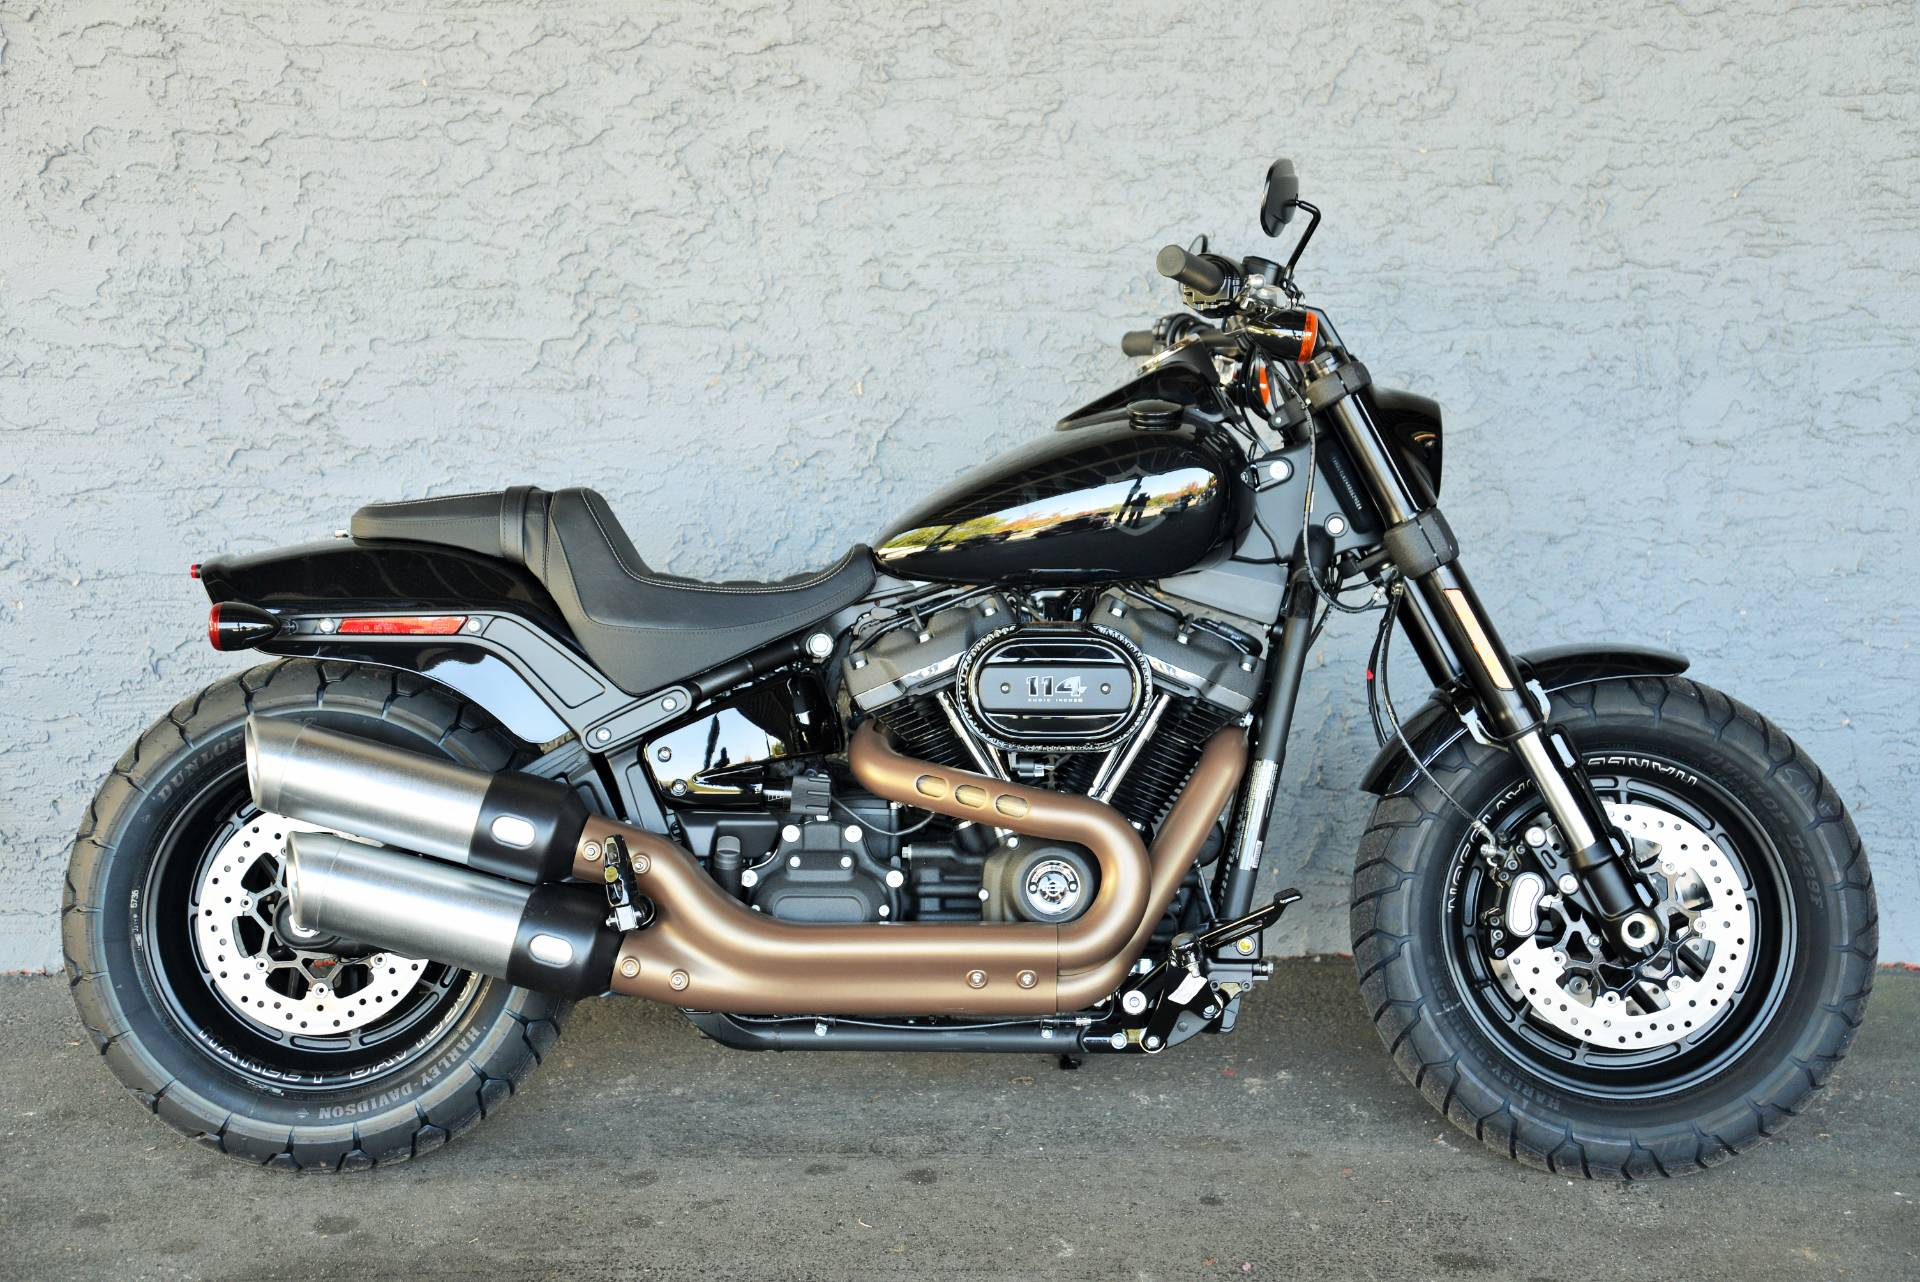 2019 Harley-Davidson FATBOB S in Lakewood, New Jersey - Photo 1